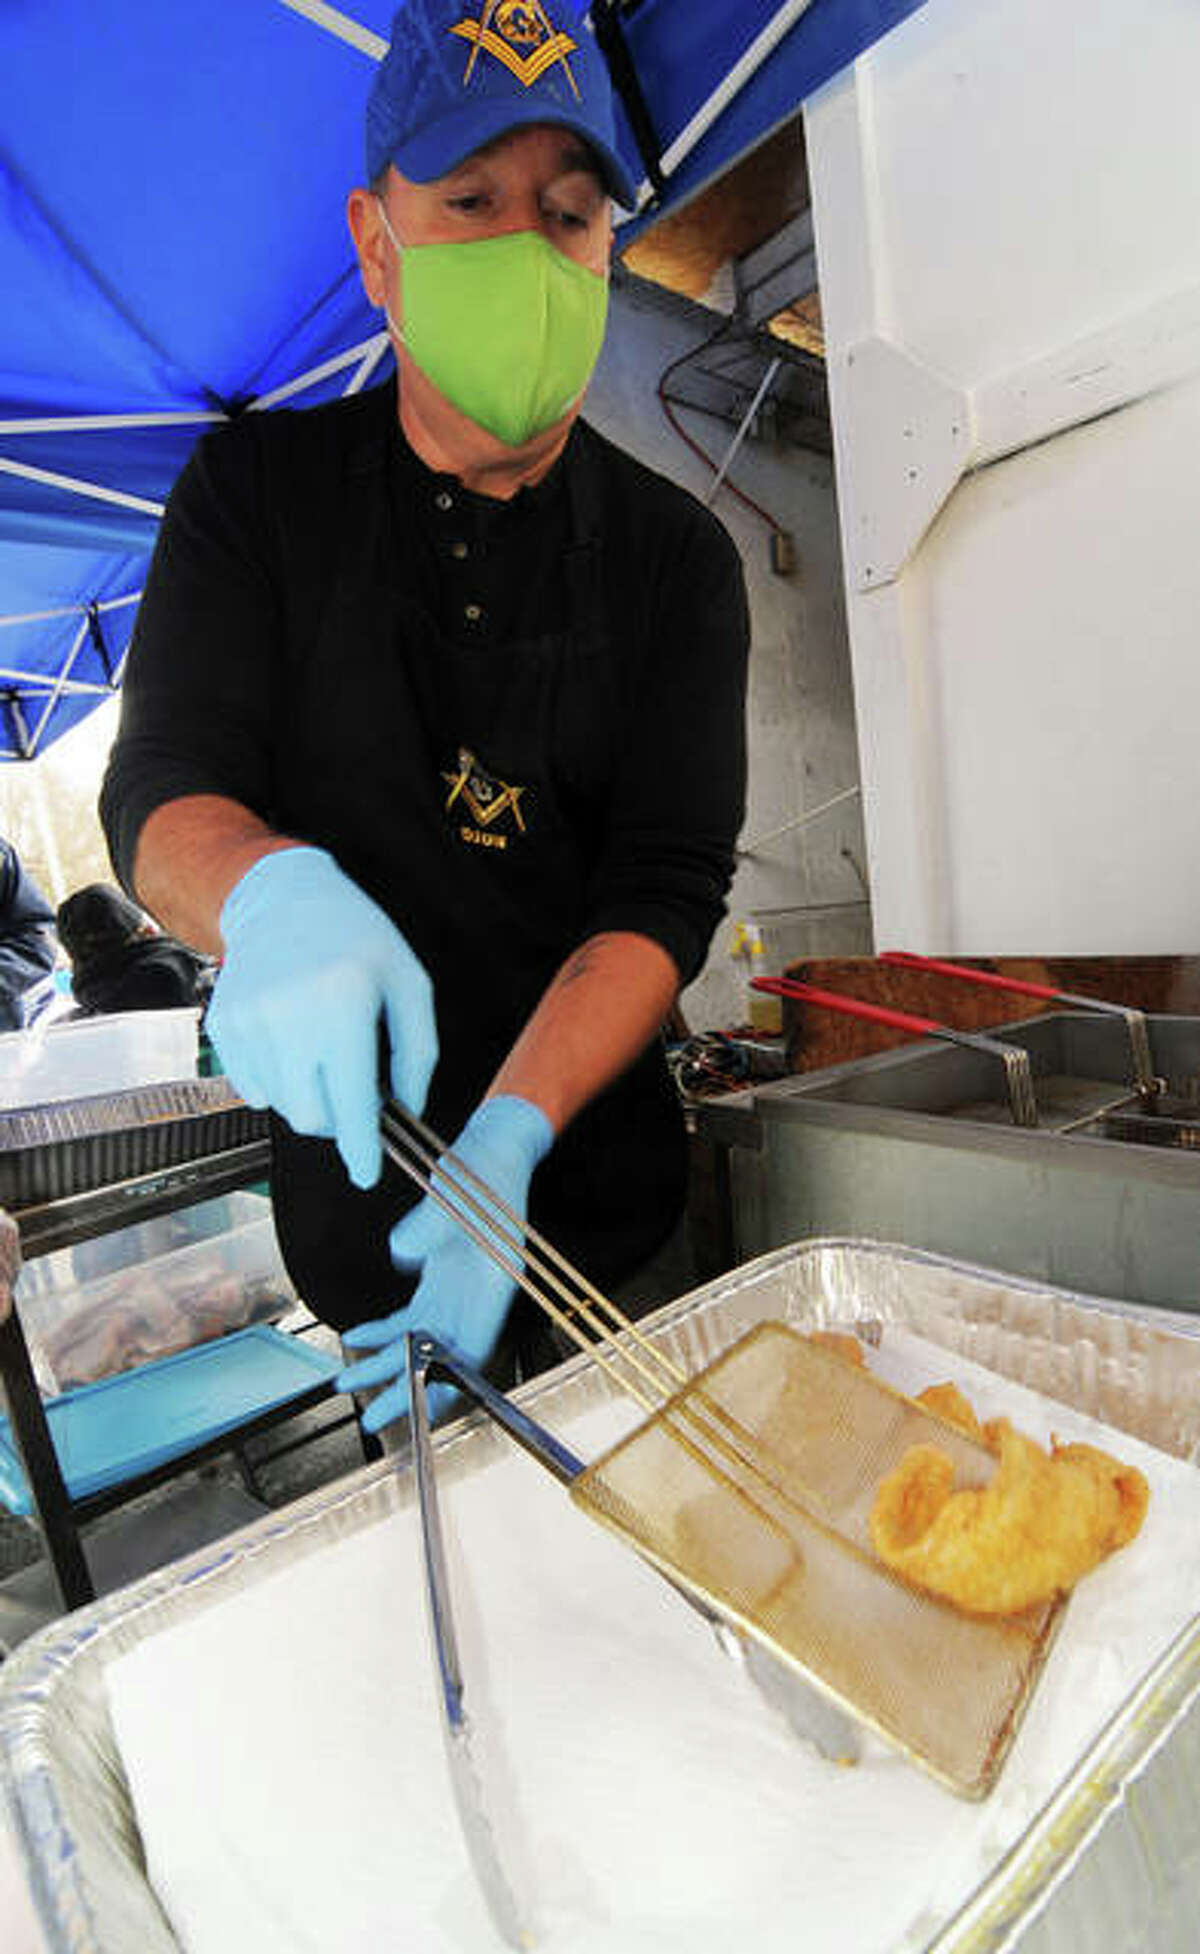 Dion Roe removes a hot piece of fish from the fryer during Saturday's Bethalto Masonic Lodge Fish Fry.